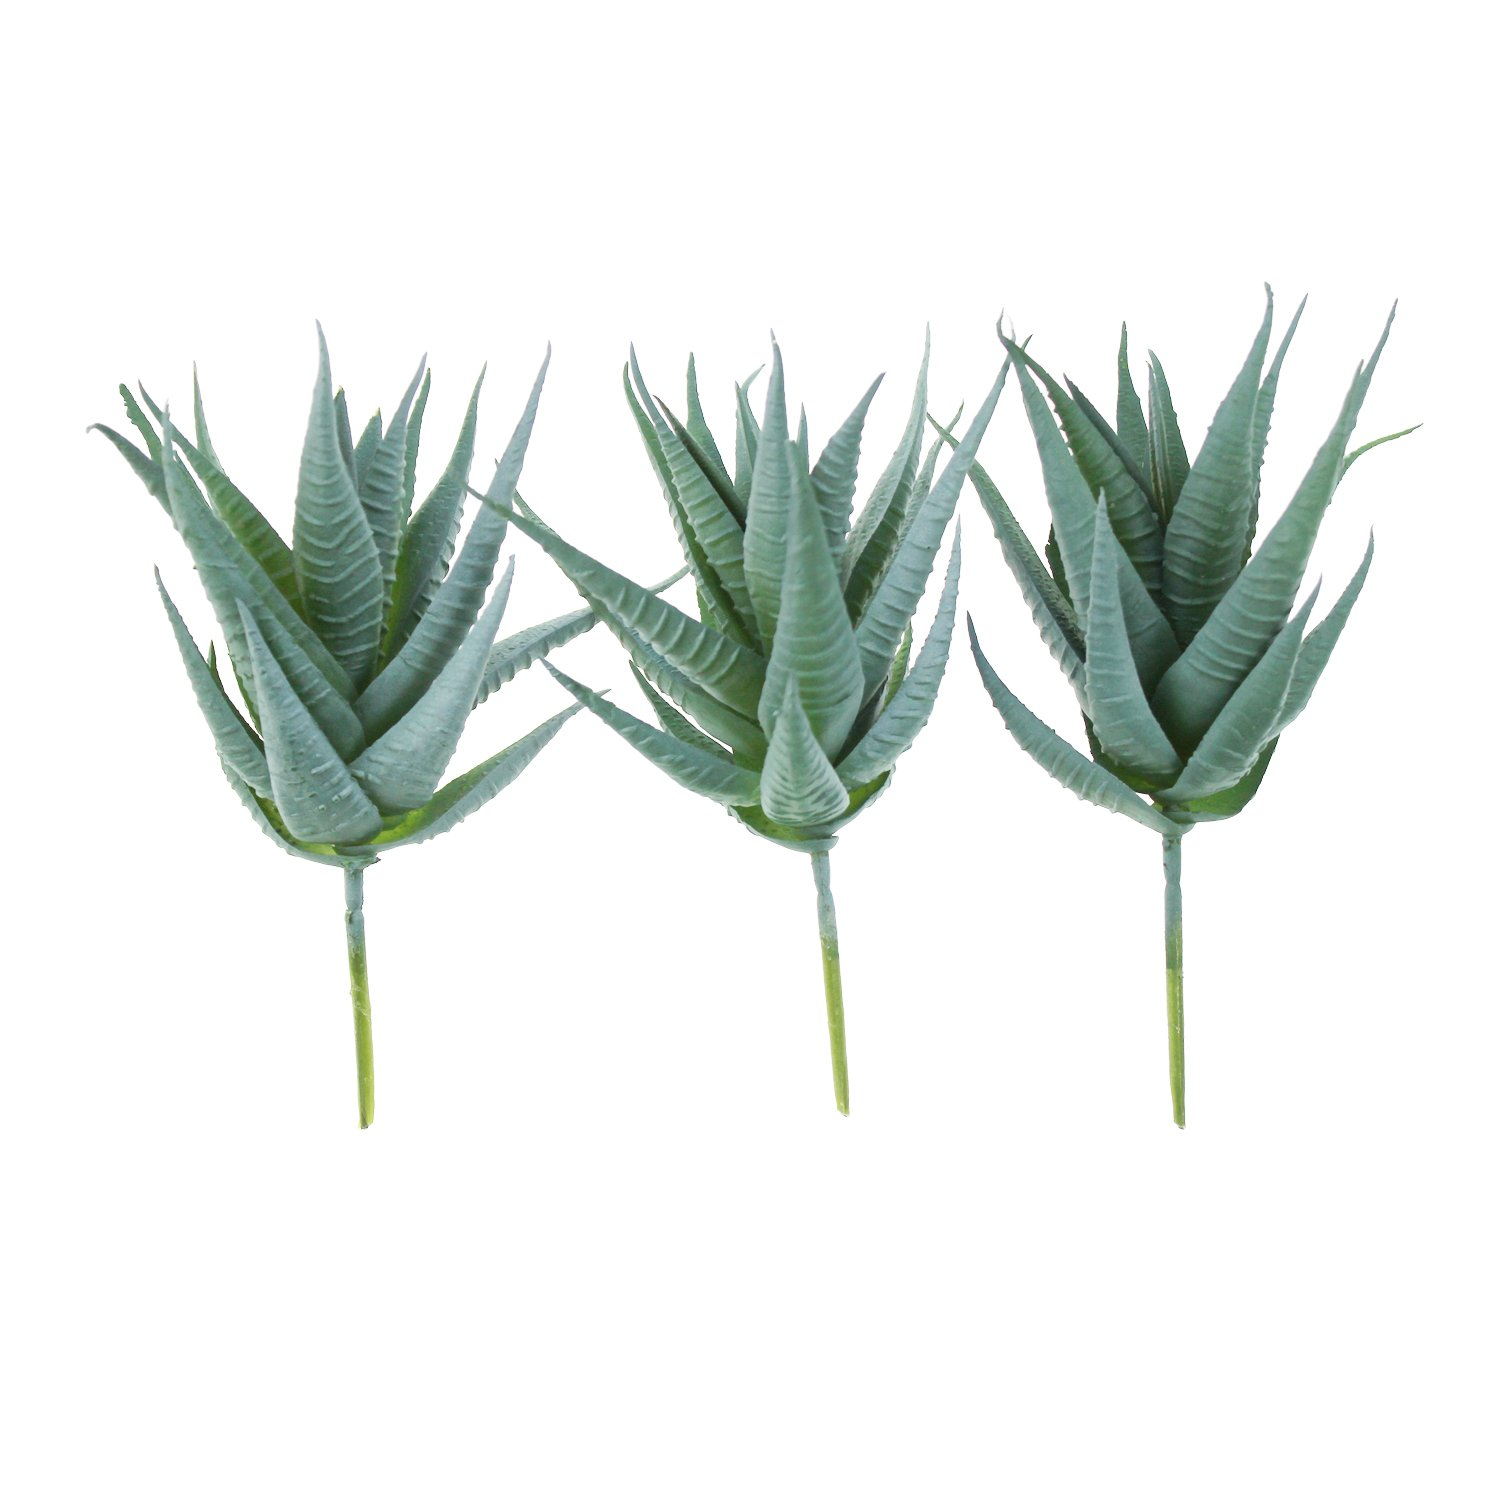 Goodma 3 Pieces Realistic Artificial Aloe Faux Succulent Textured Spiky Green Haworthia Cactus Plants Unpotted (Light Green)